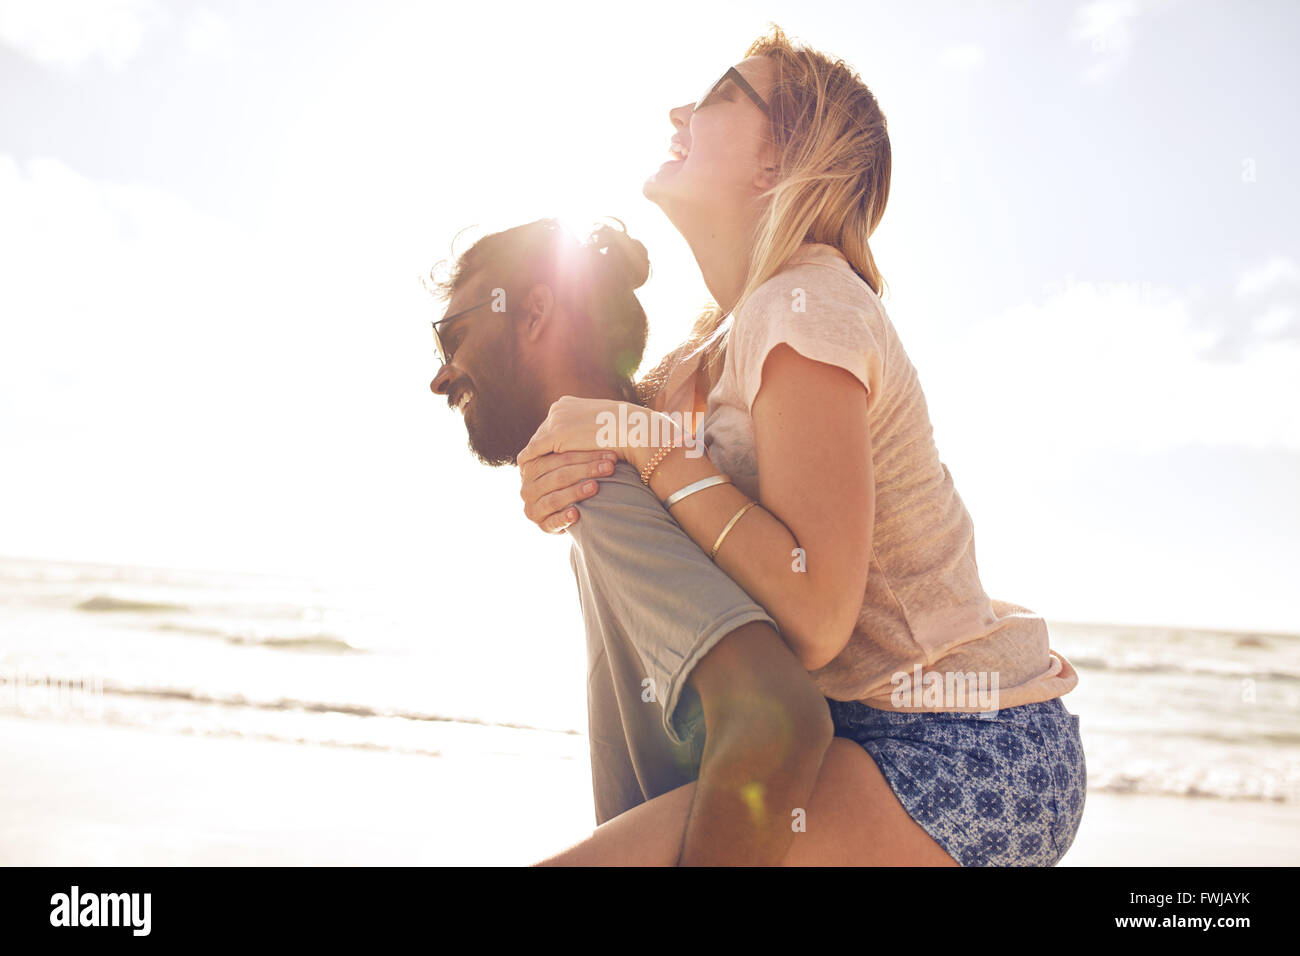 Side view portrait of young man carrying his girlfriend on his back at the beach. Man piggybacking girlfriend at - Stock Image